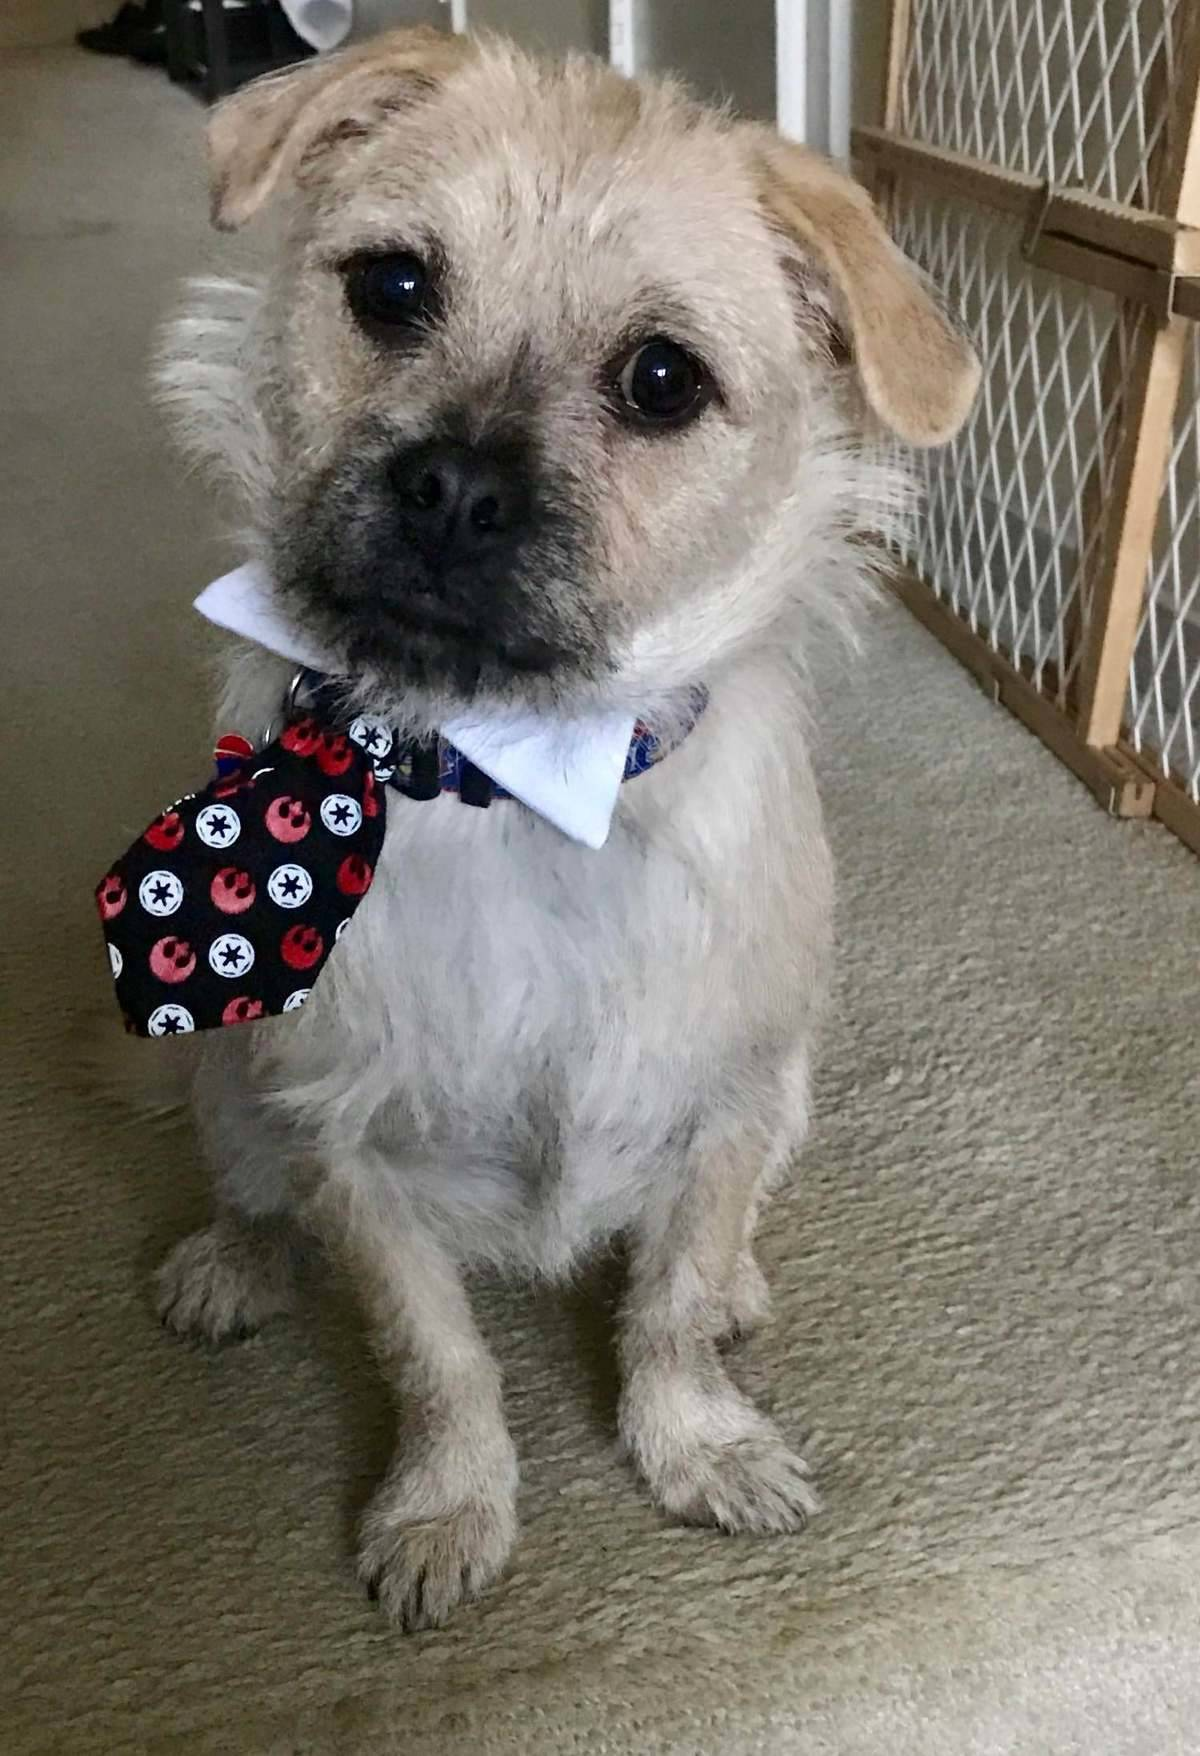 A small dog wears a collar with a tie.